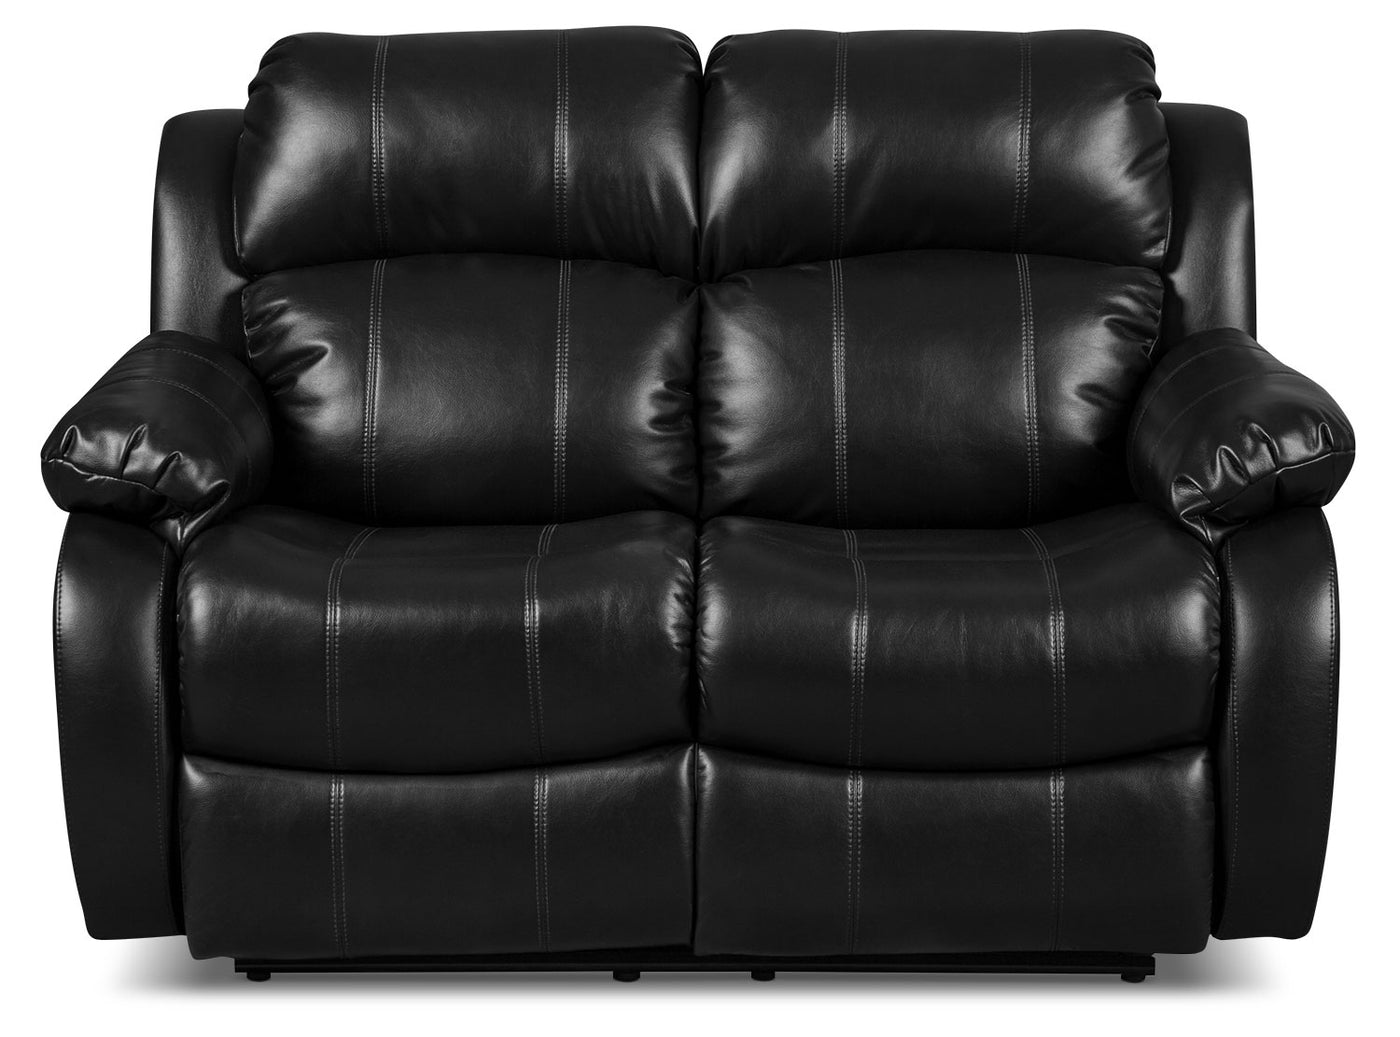 Surprising Omega 3 Leather Look Fabric Reclining Loveseat Black Alphanode Cool Chair Designs And Ideas Alphanodeonline